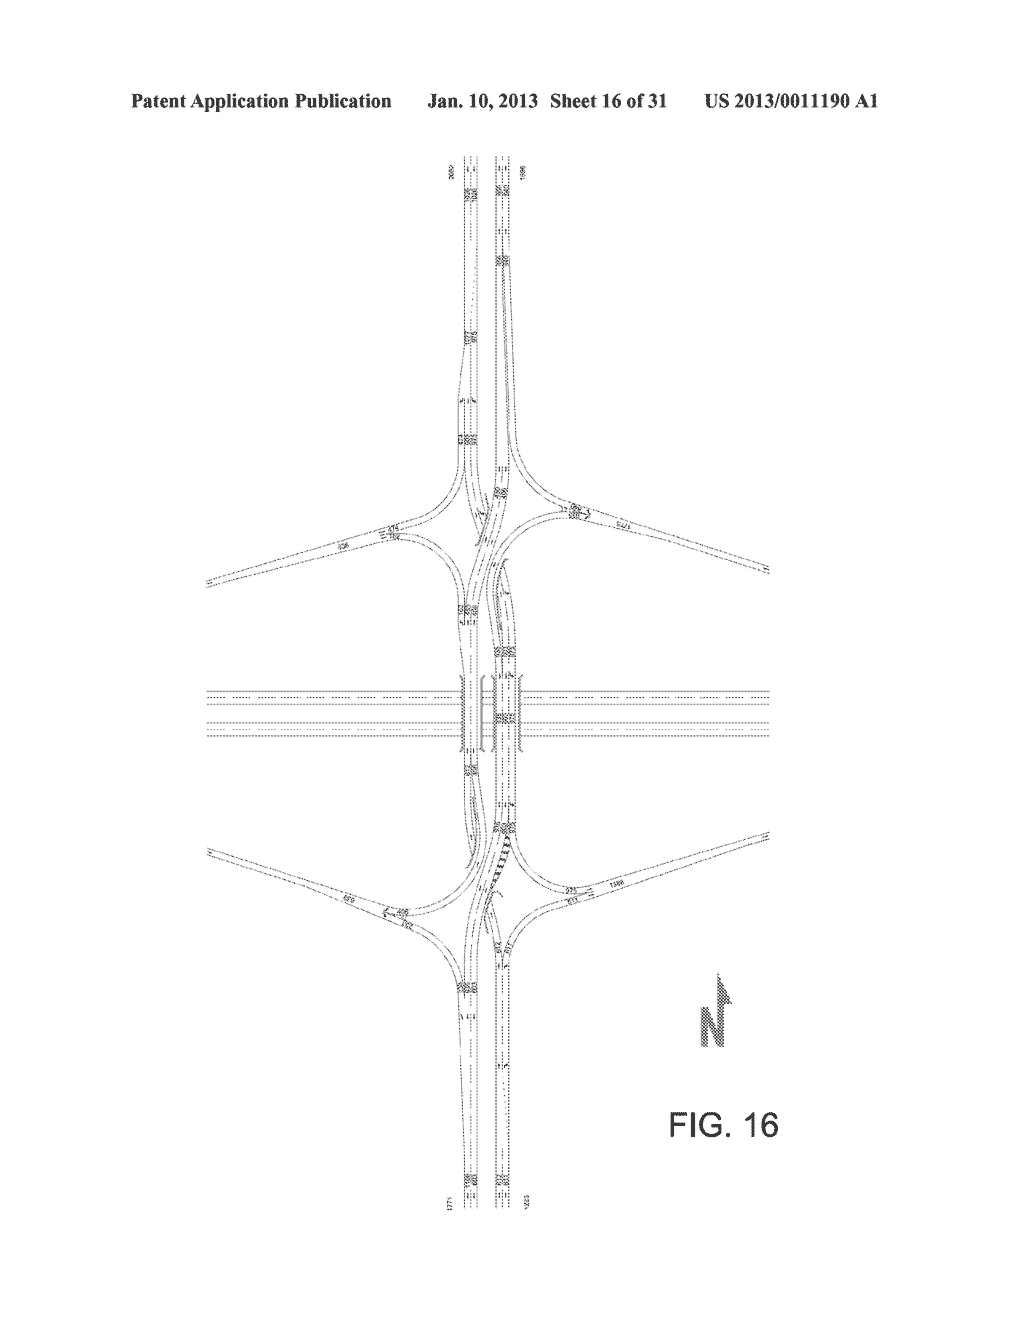 Double Crossover Merging Interchange Diagram Schematic And Image 17